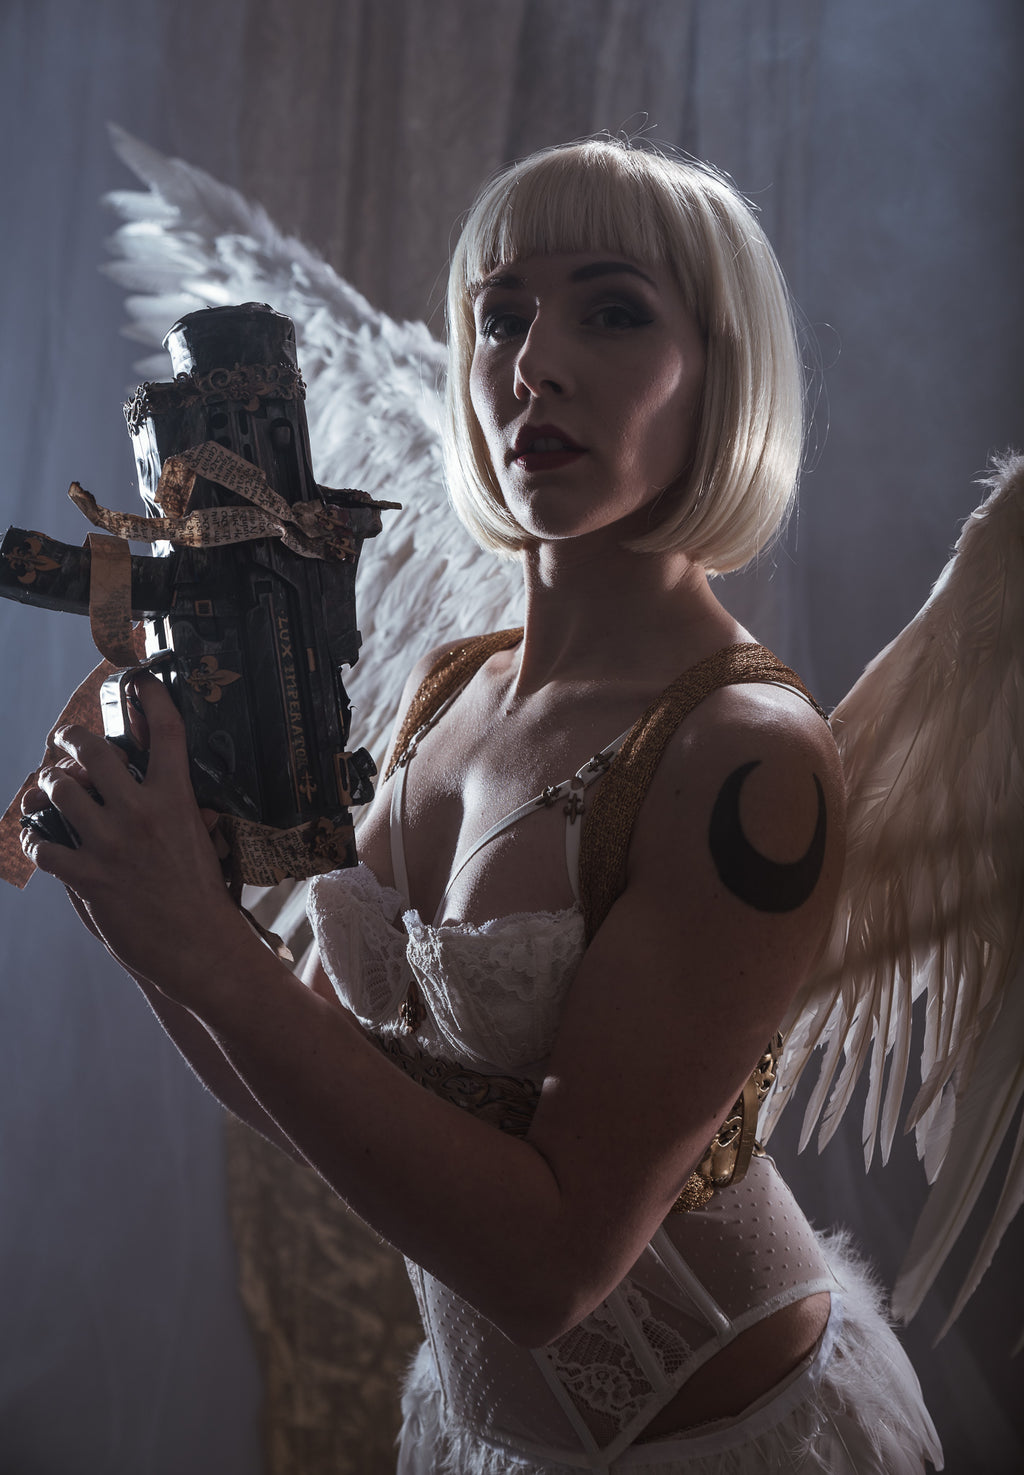 Digital Photo set 02 - Celestine 1 - Light of Faith